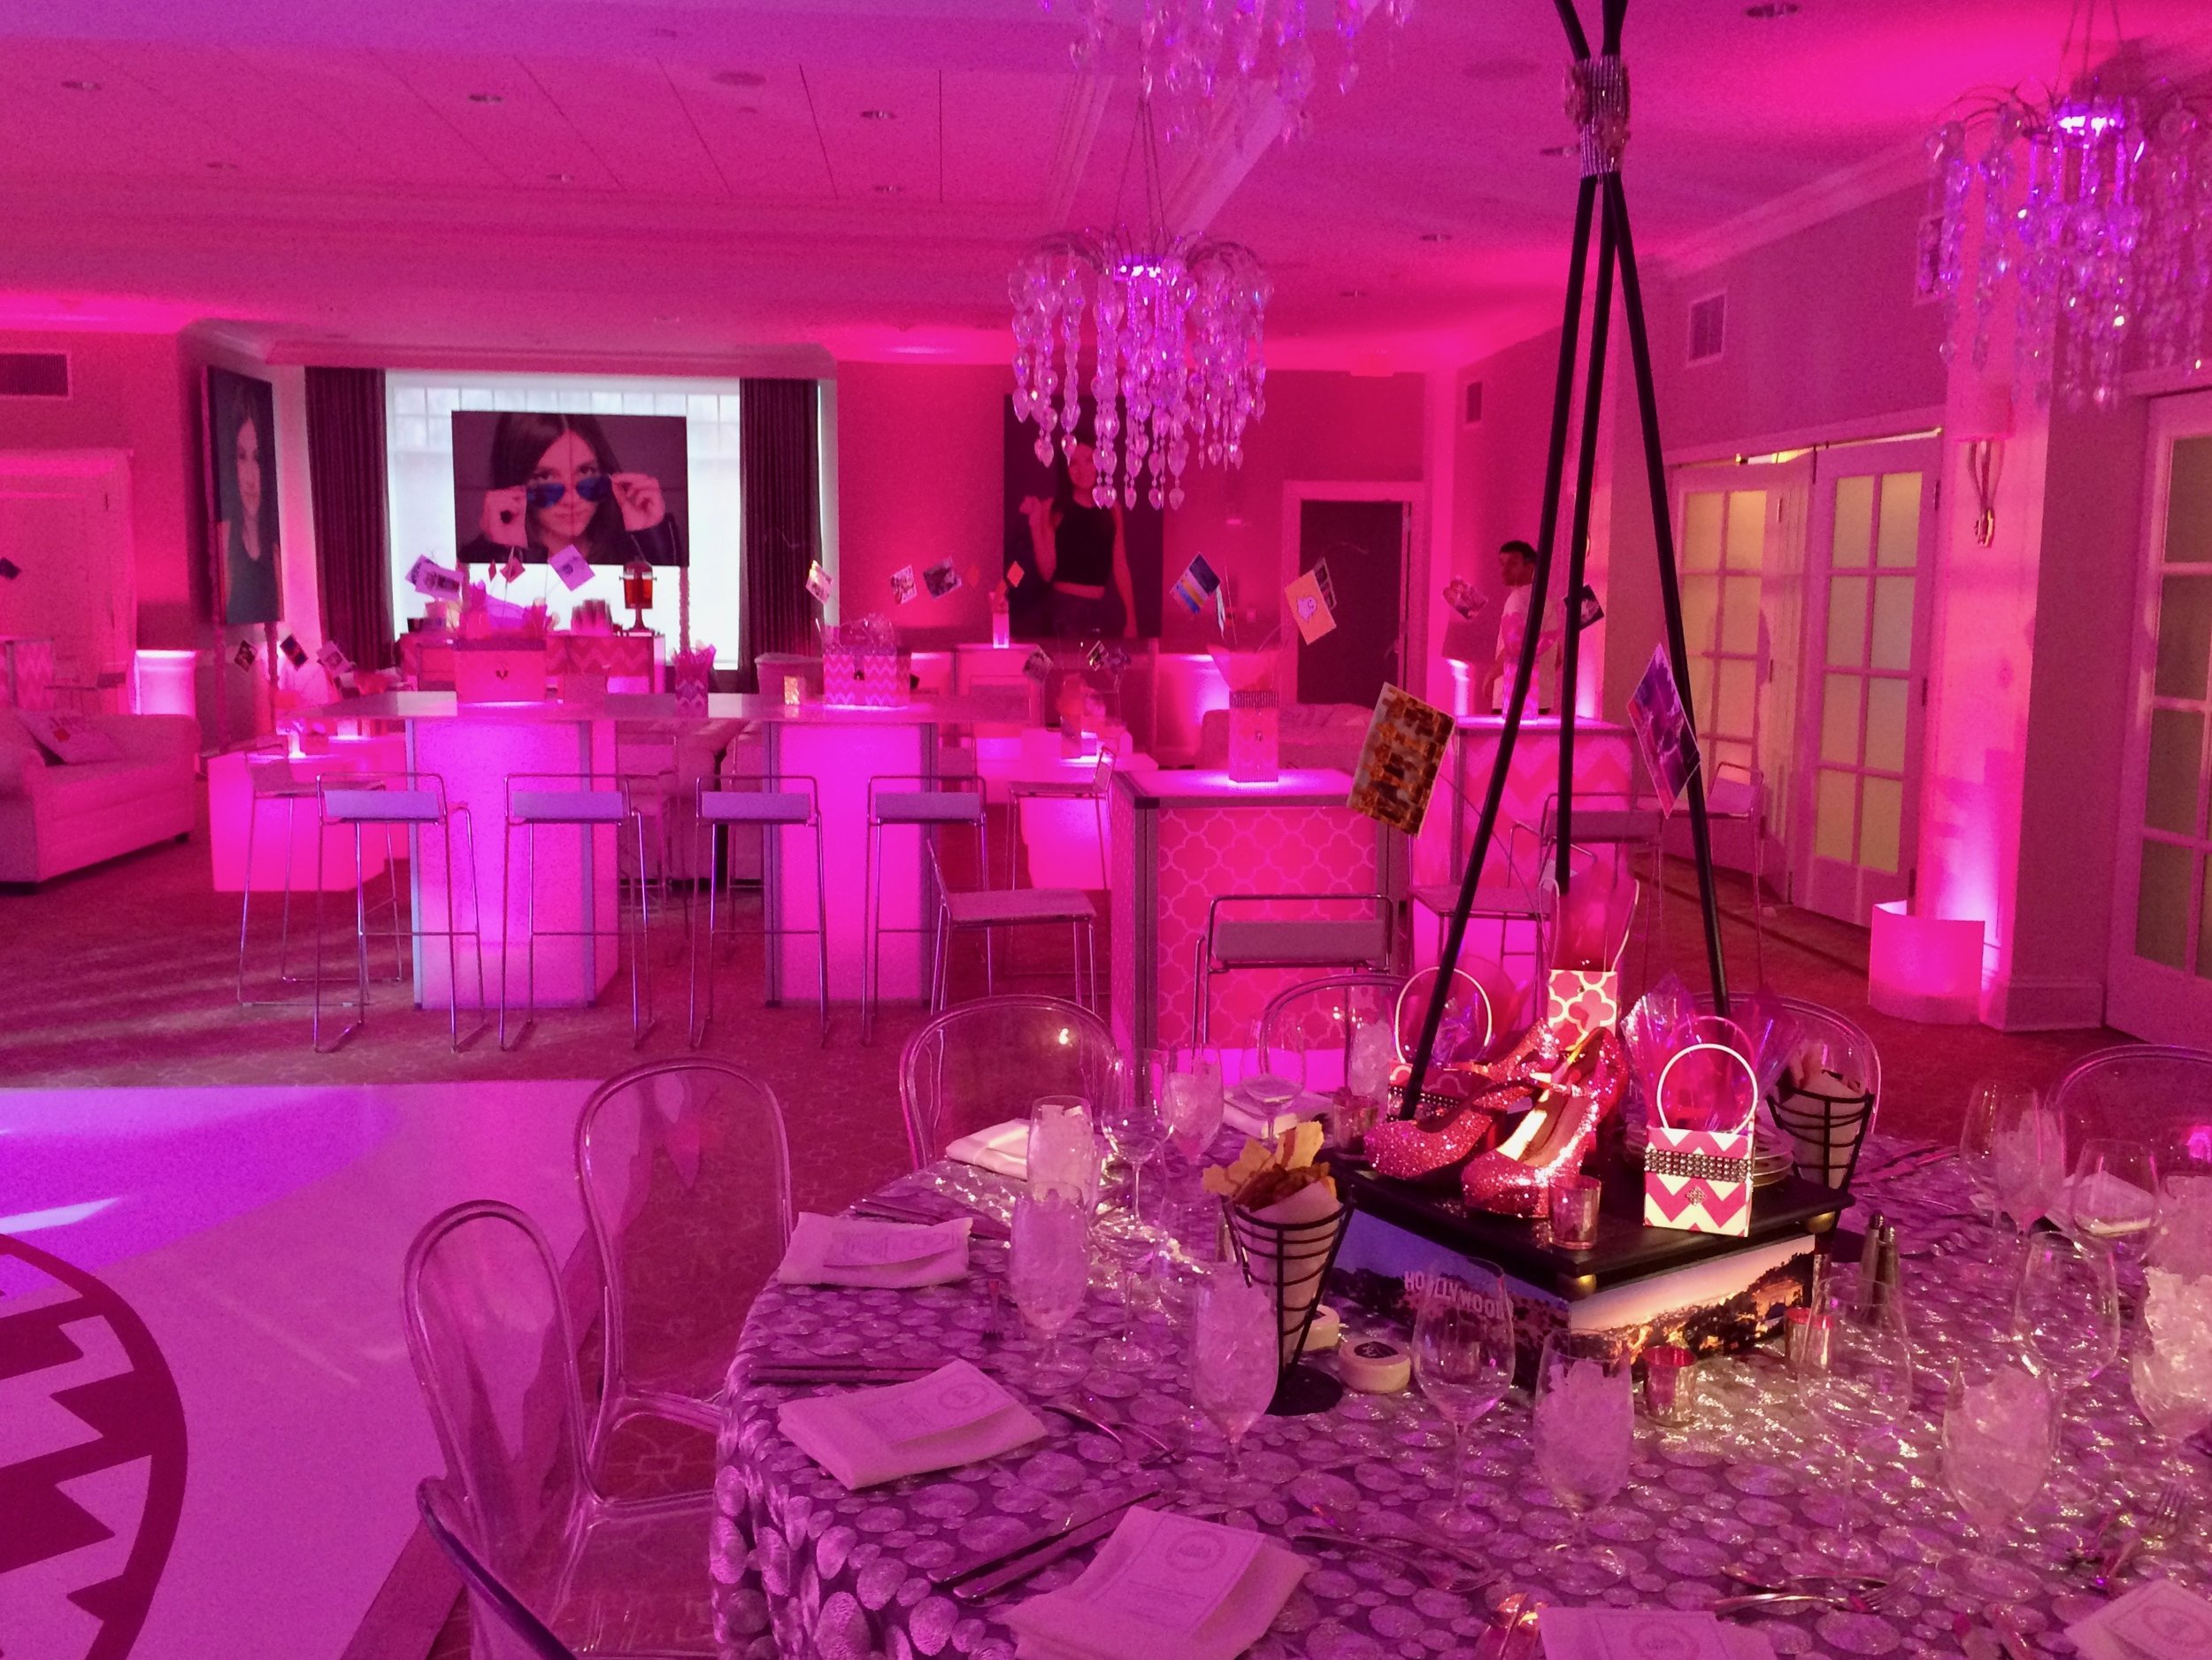 Bat+mitzvah+bar+mitzvahs+nj+ny+pa+decor+lighting+eggsotic+events.jpeg